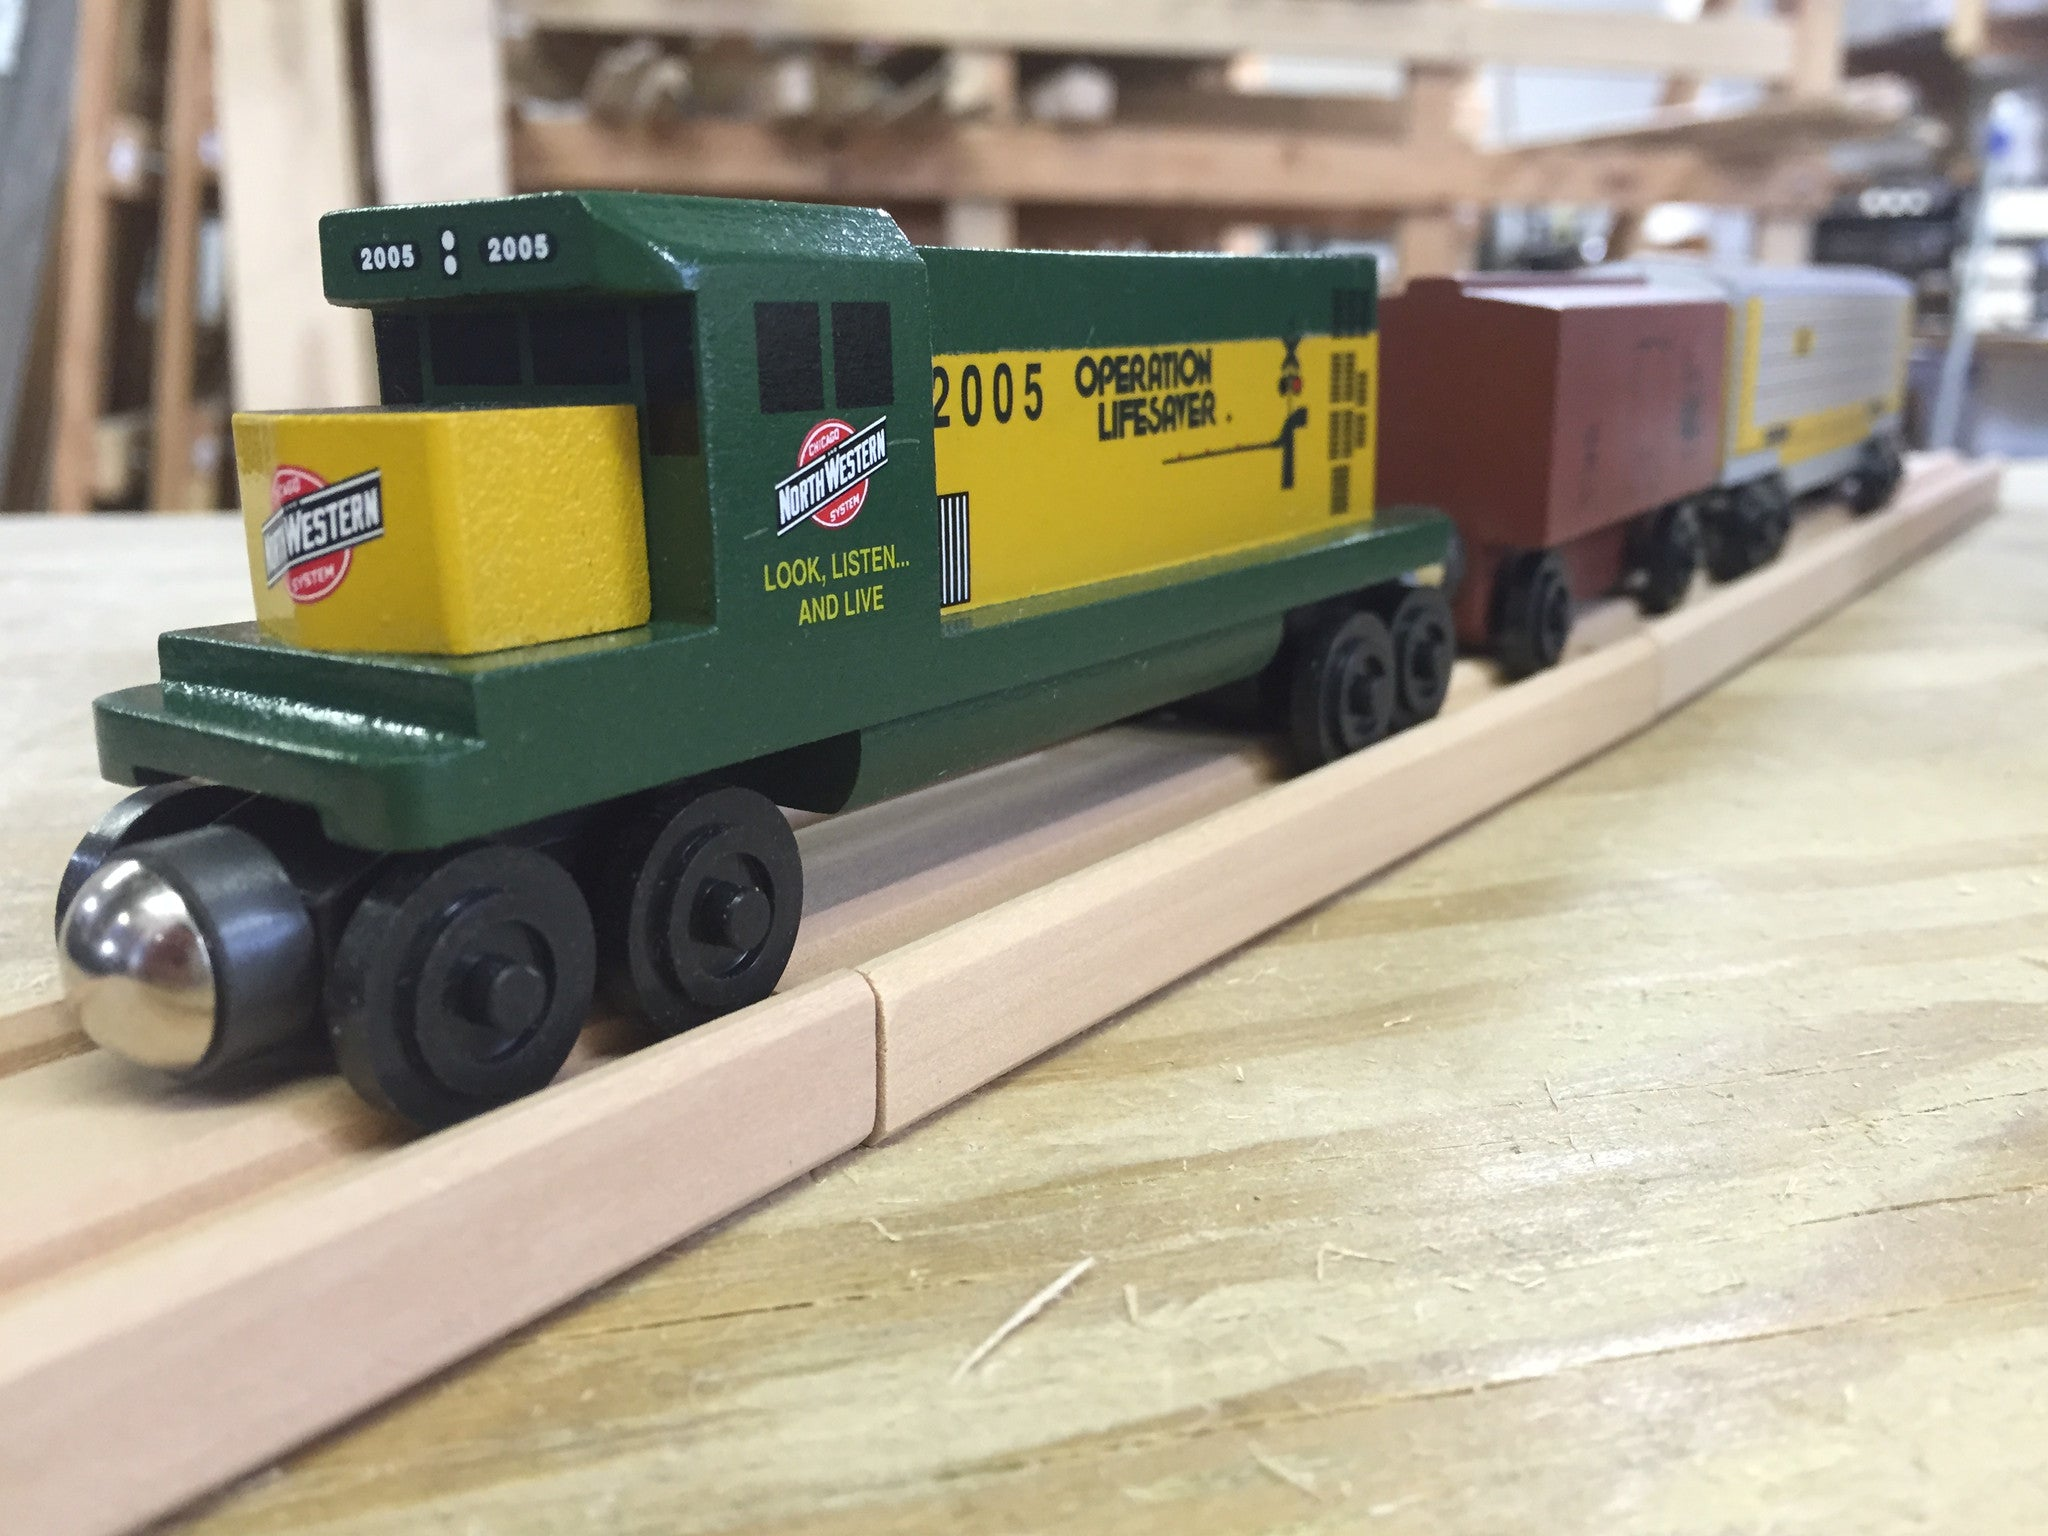 Whittle Shortline Railroad Chicago and Northwestern GP-38 Diesel Engine Wooden Toy Train with other Whittle Trains